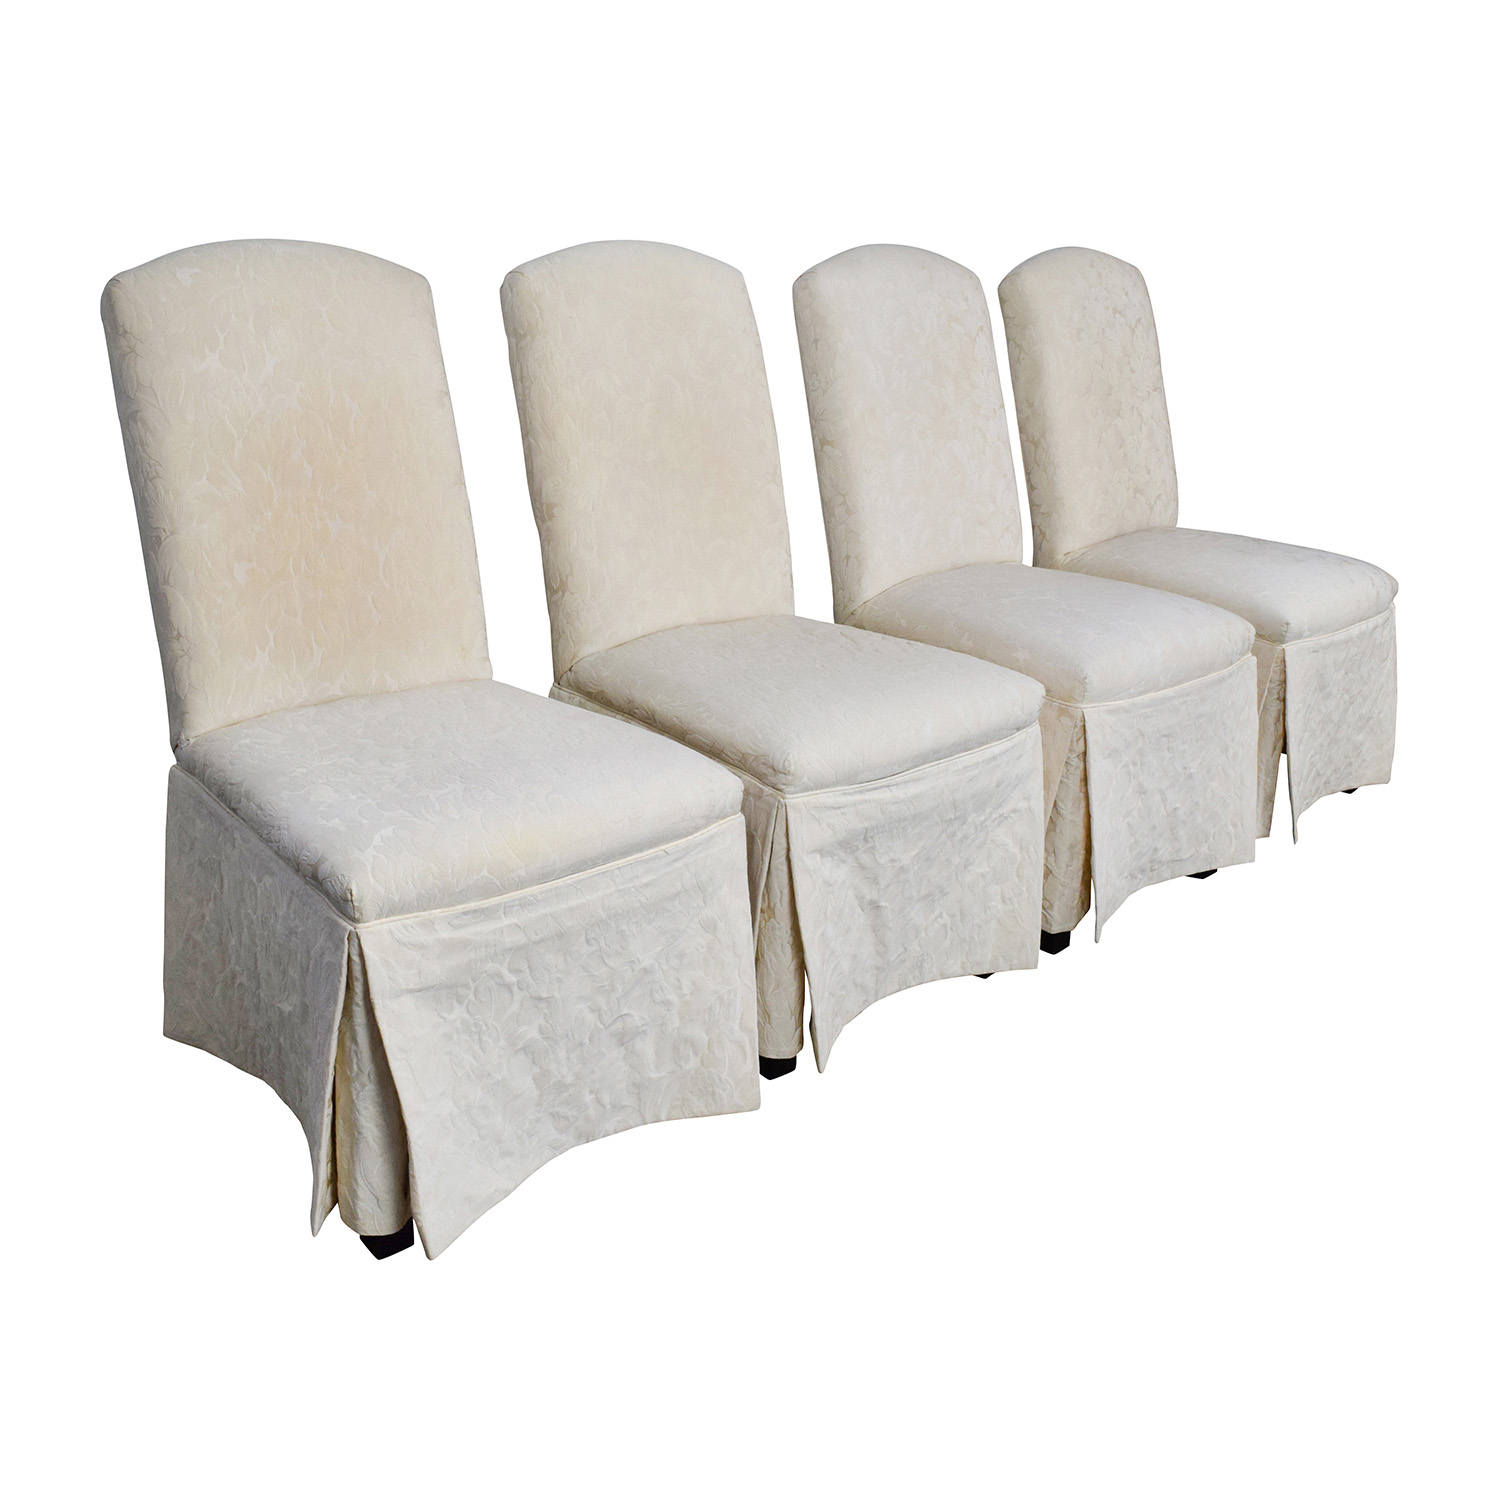 90 off thomasville thomasville ivory upholstered dining for Upholstered dining chairs